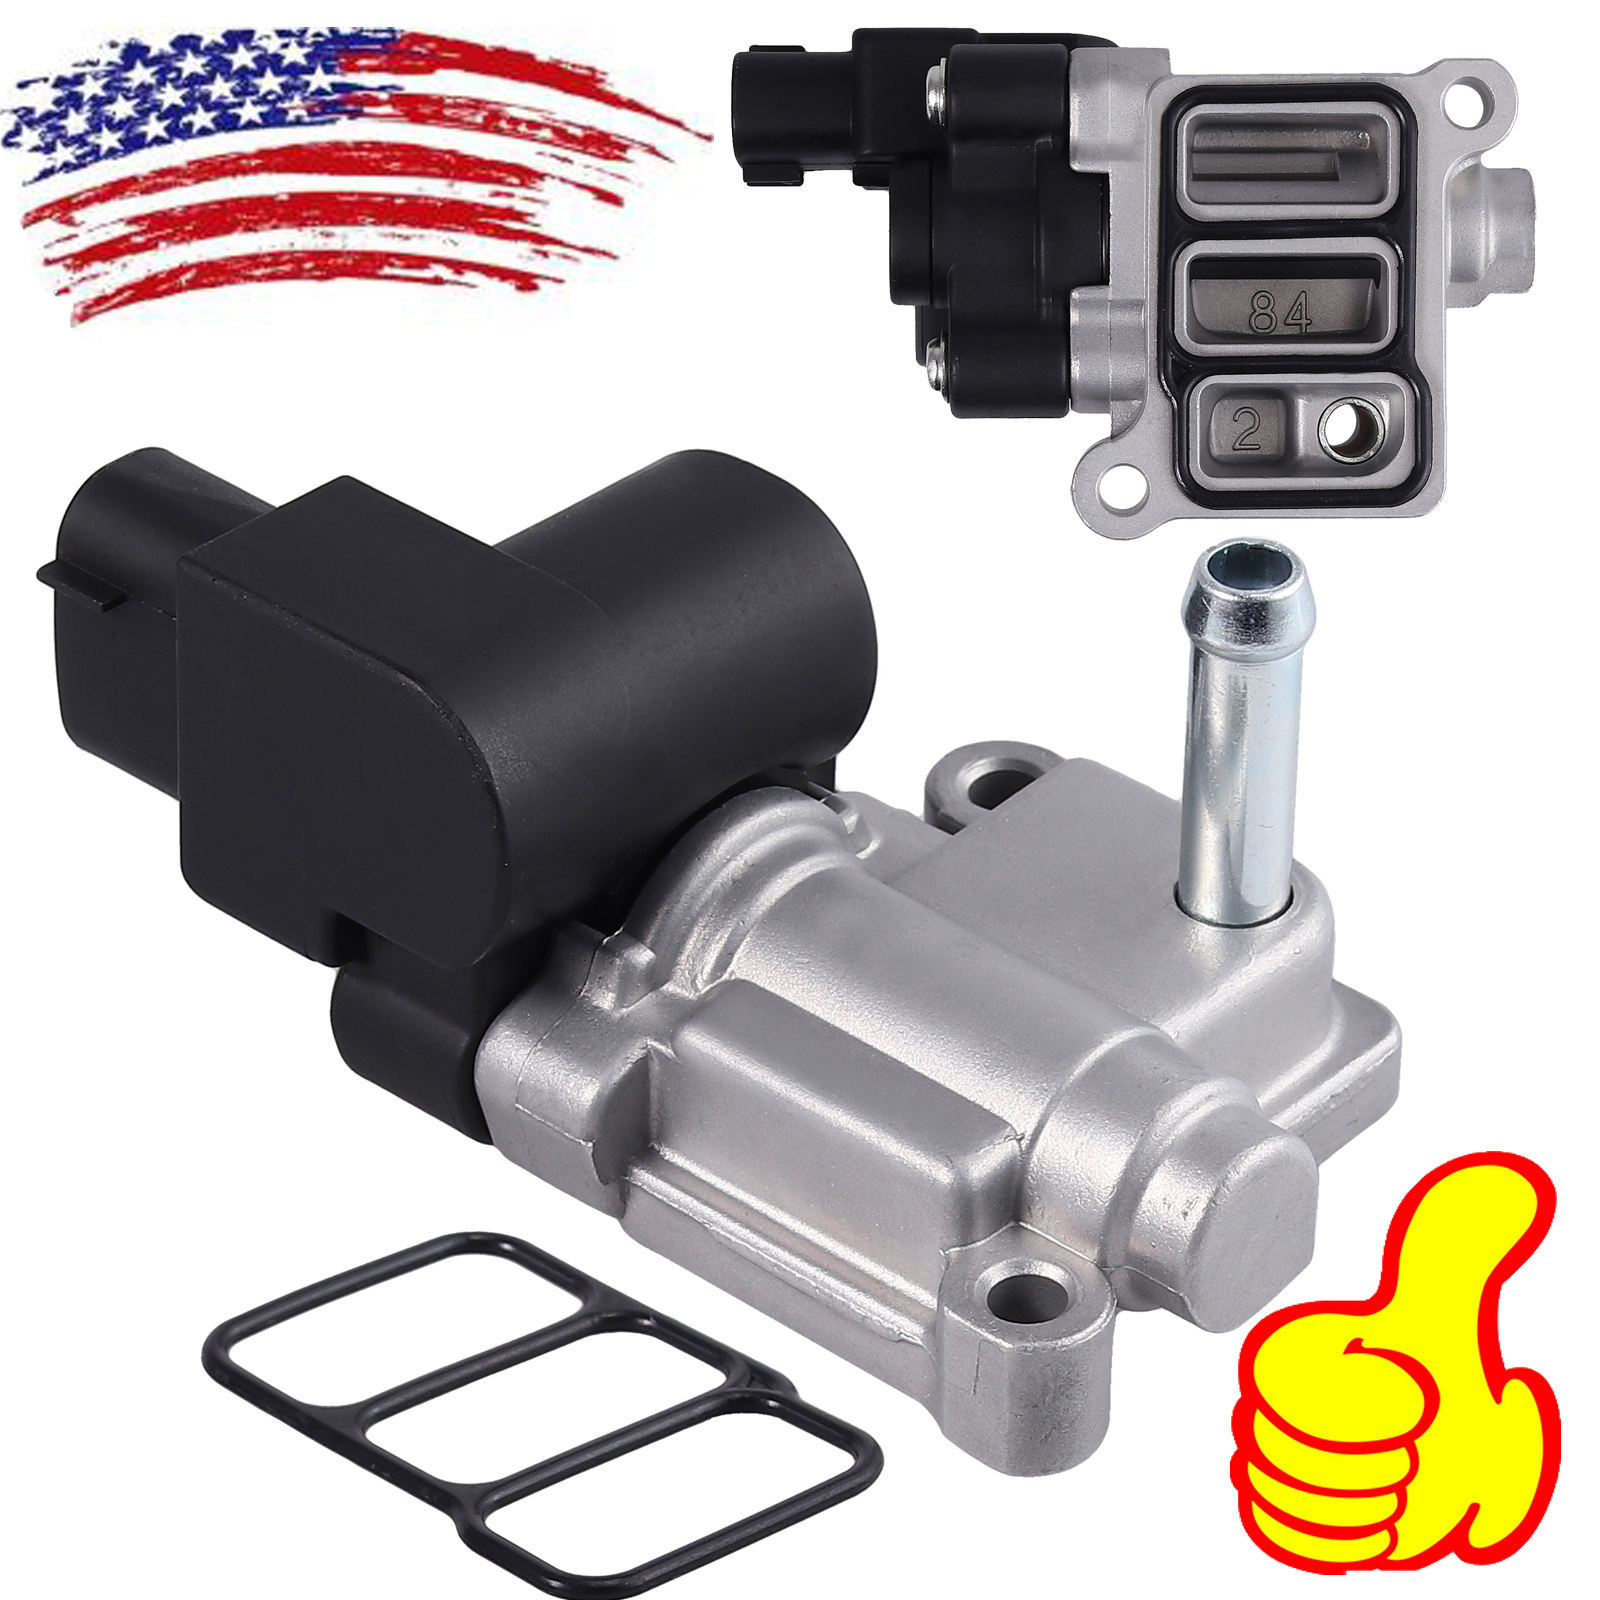 Idle Air Control Valves IACV 16022-P8A-A01 AC4069 31072 for Honda Accord Pilot Acura CR-V Odyssey Pilot TL CL V6